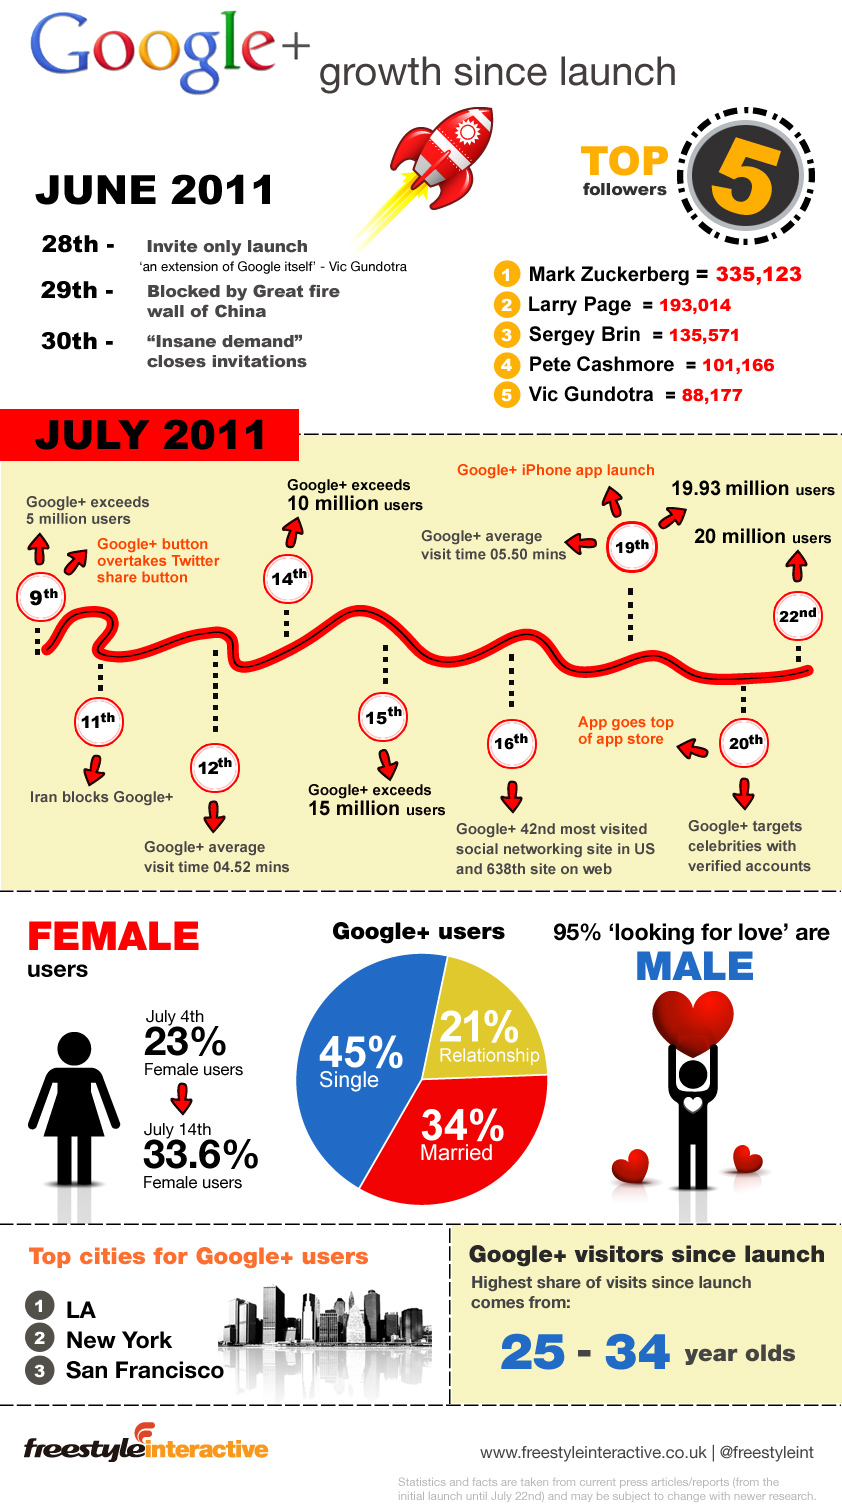 GooglePlusInfographic2 The Launch And Growth Of Google+ [INFOGRAPHIC]